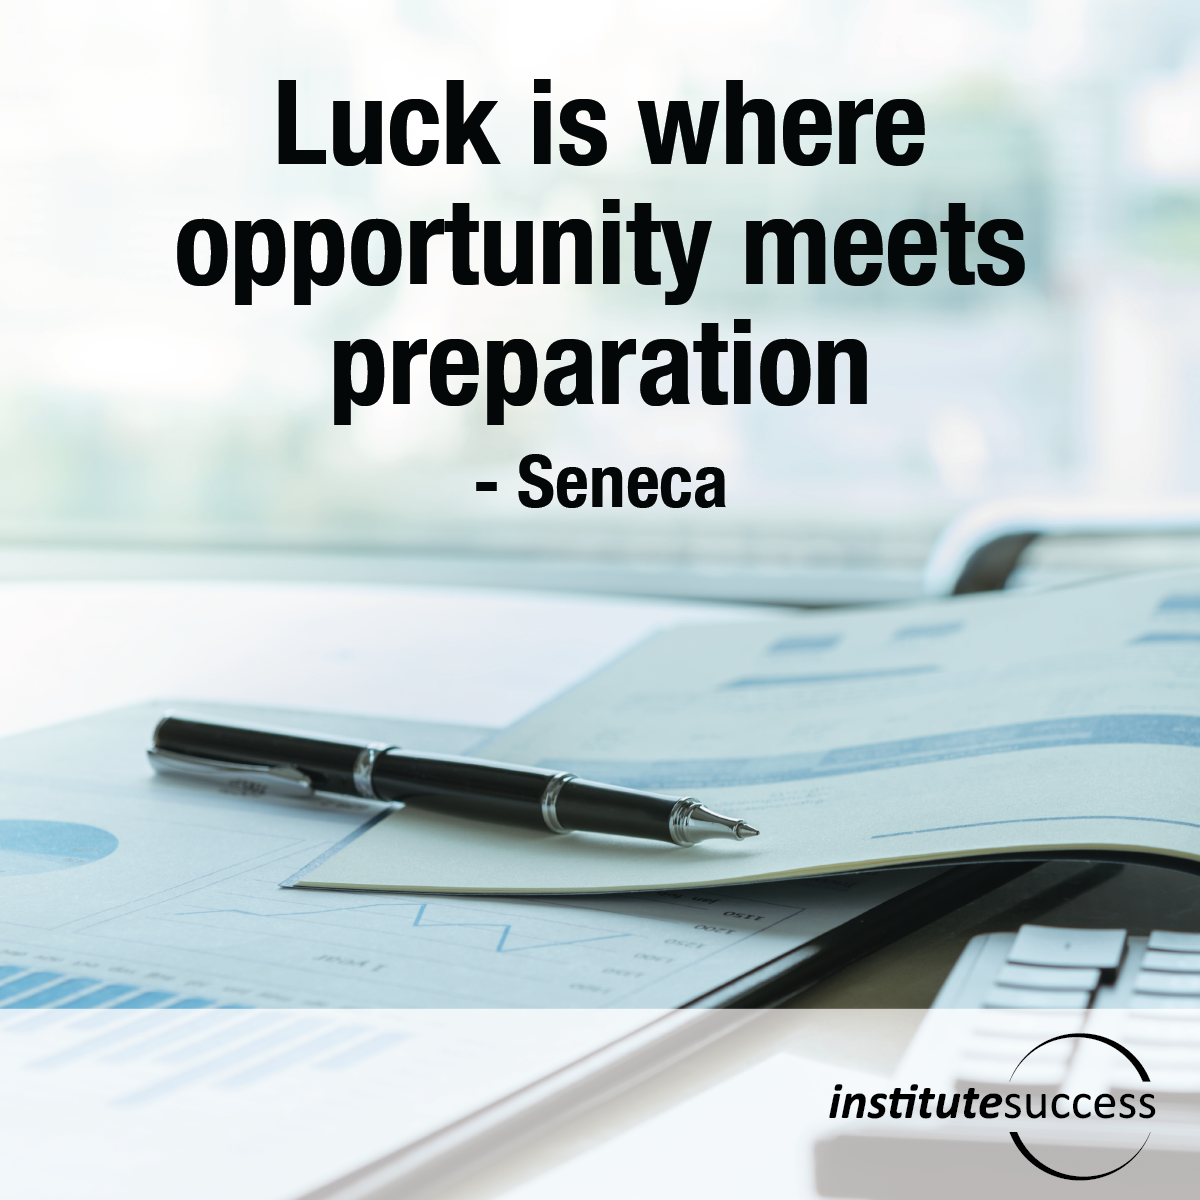 Quote Success Is When Preparation Meets Opportunity: Luck Is Where Opportunity Meets Preparation